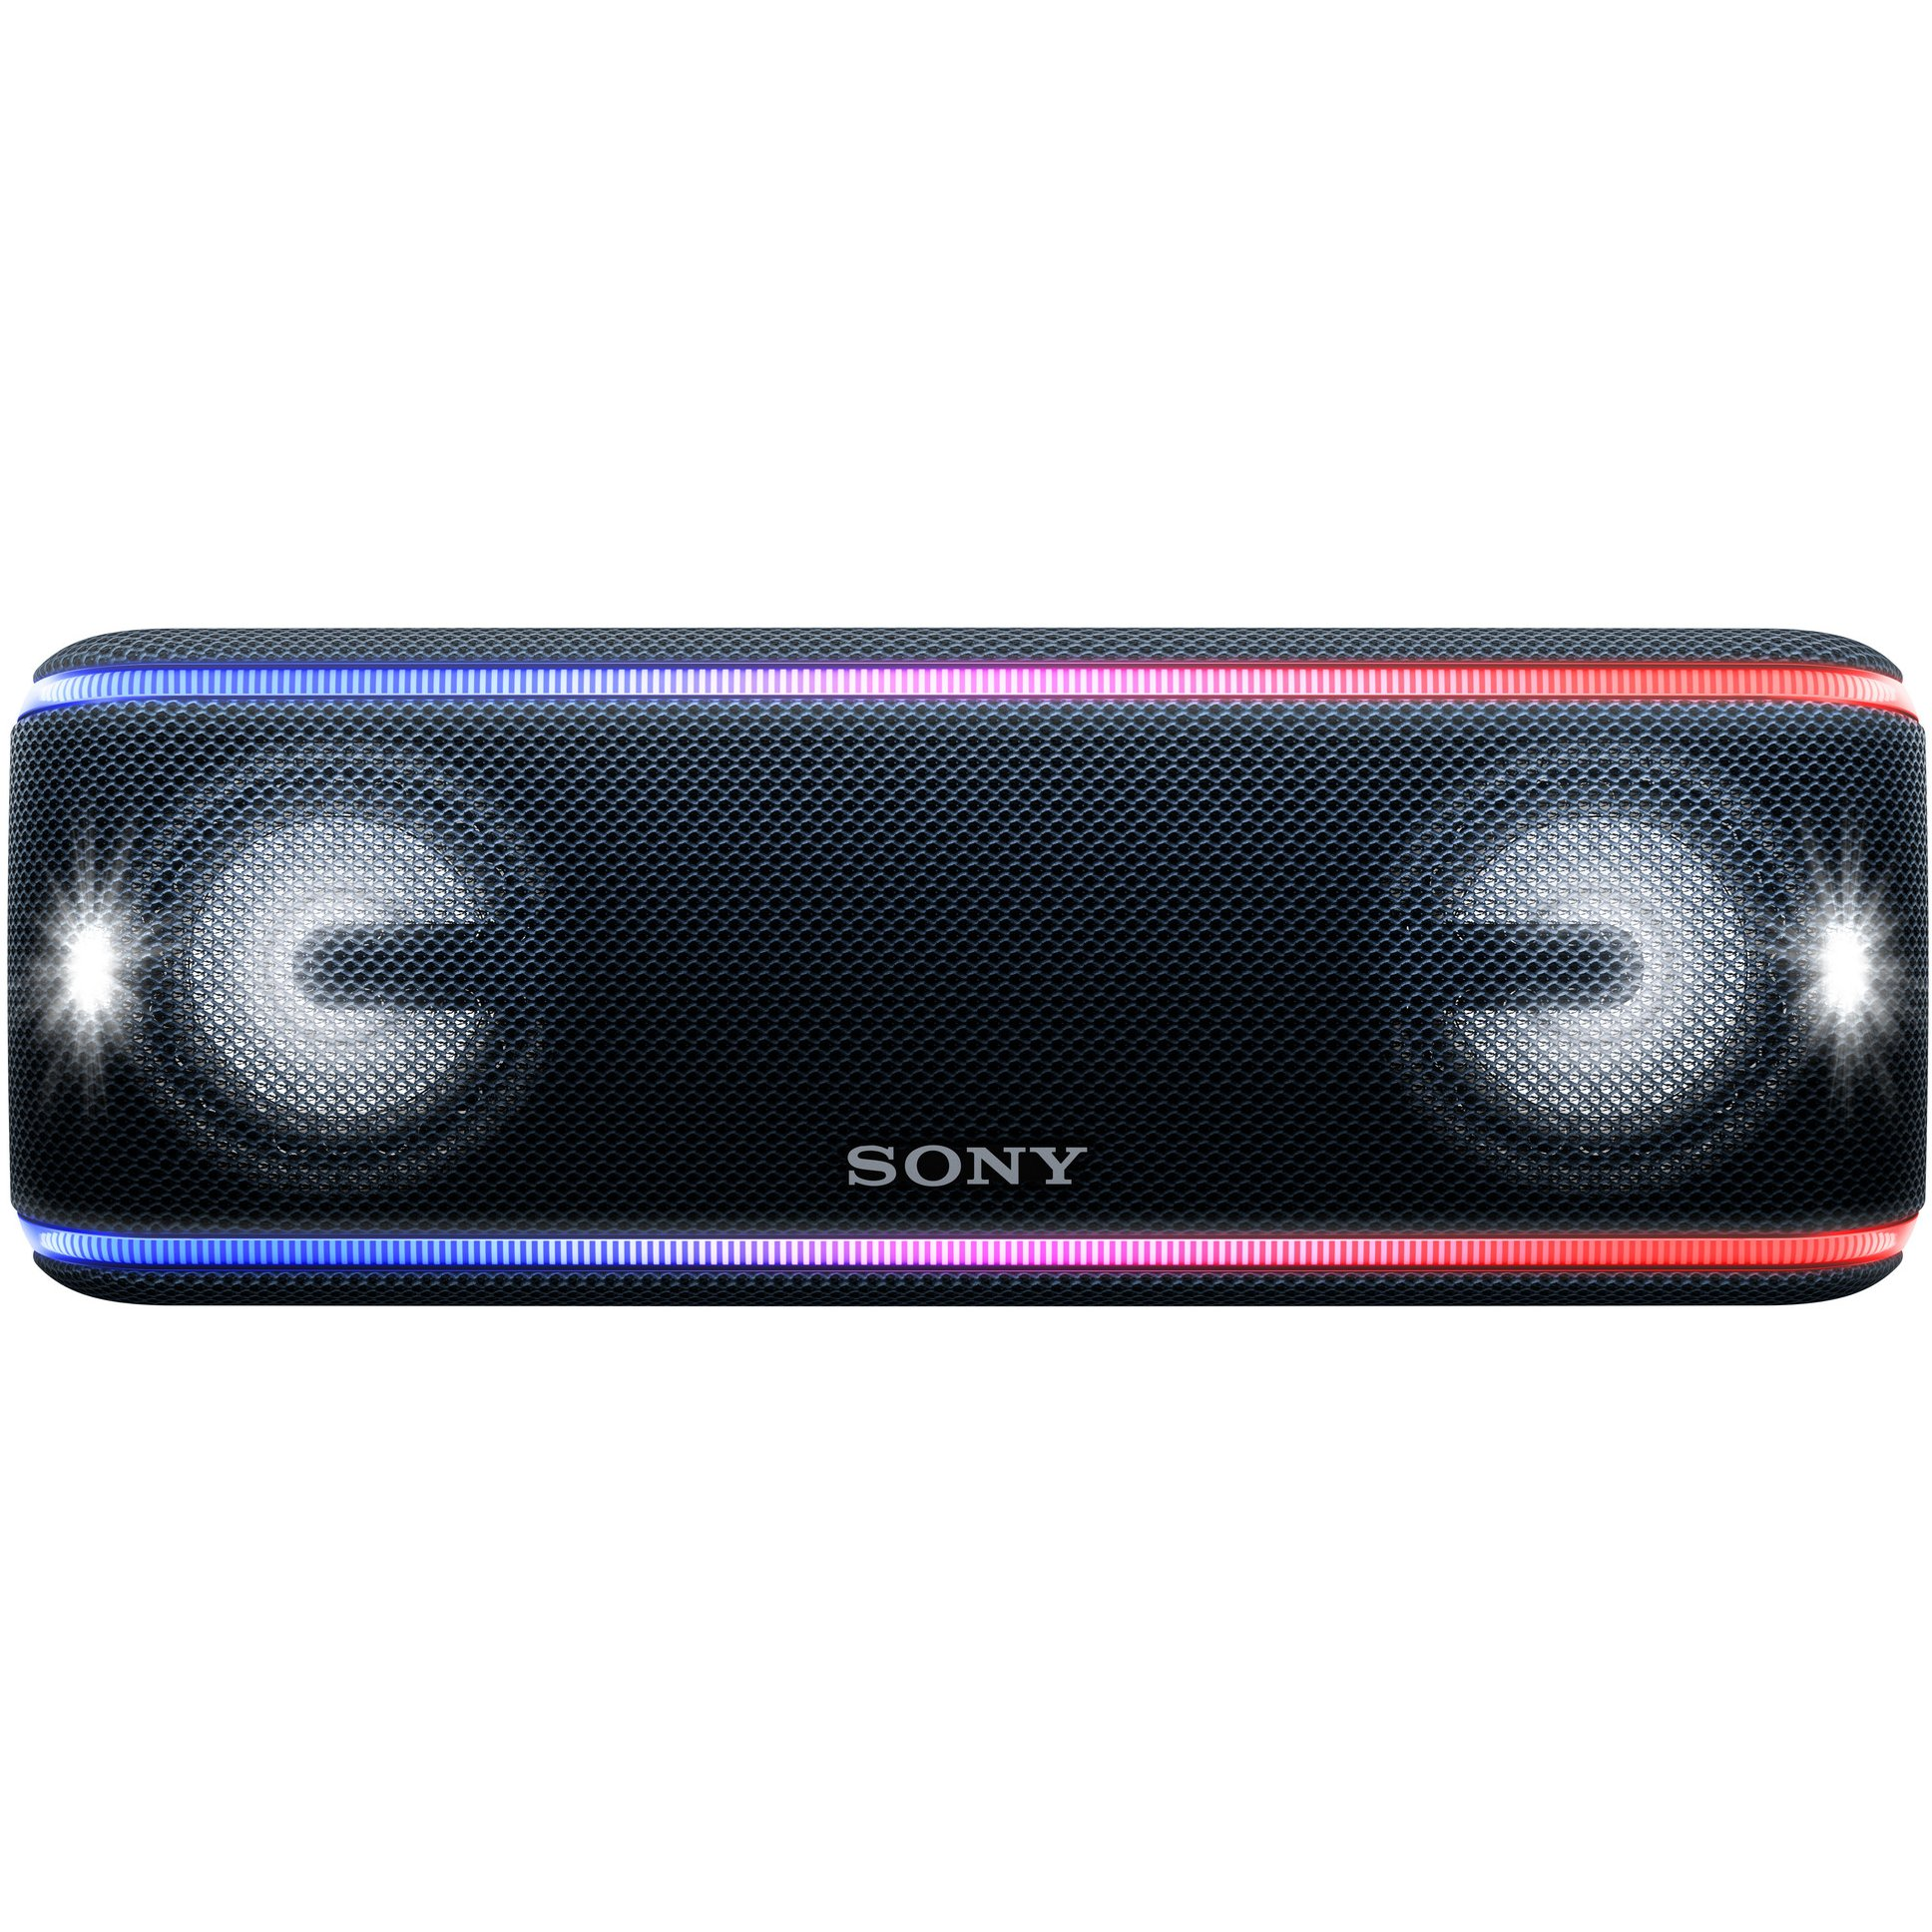 Bluetooth Box Black Sony Portable Bluetooth Speaker Srs Xb41